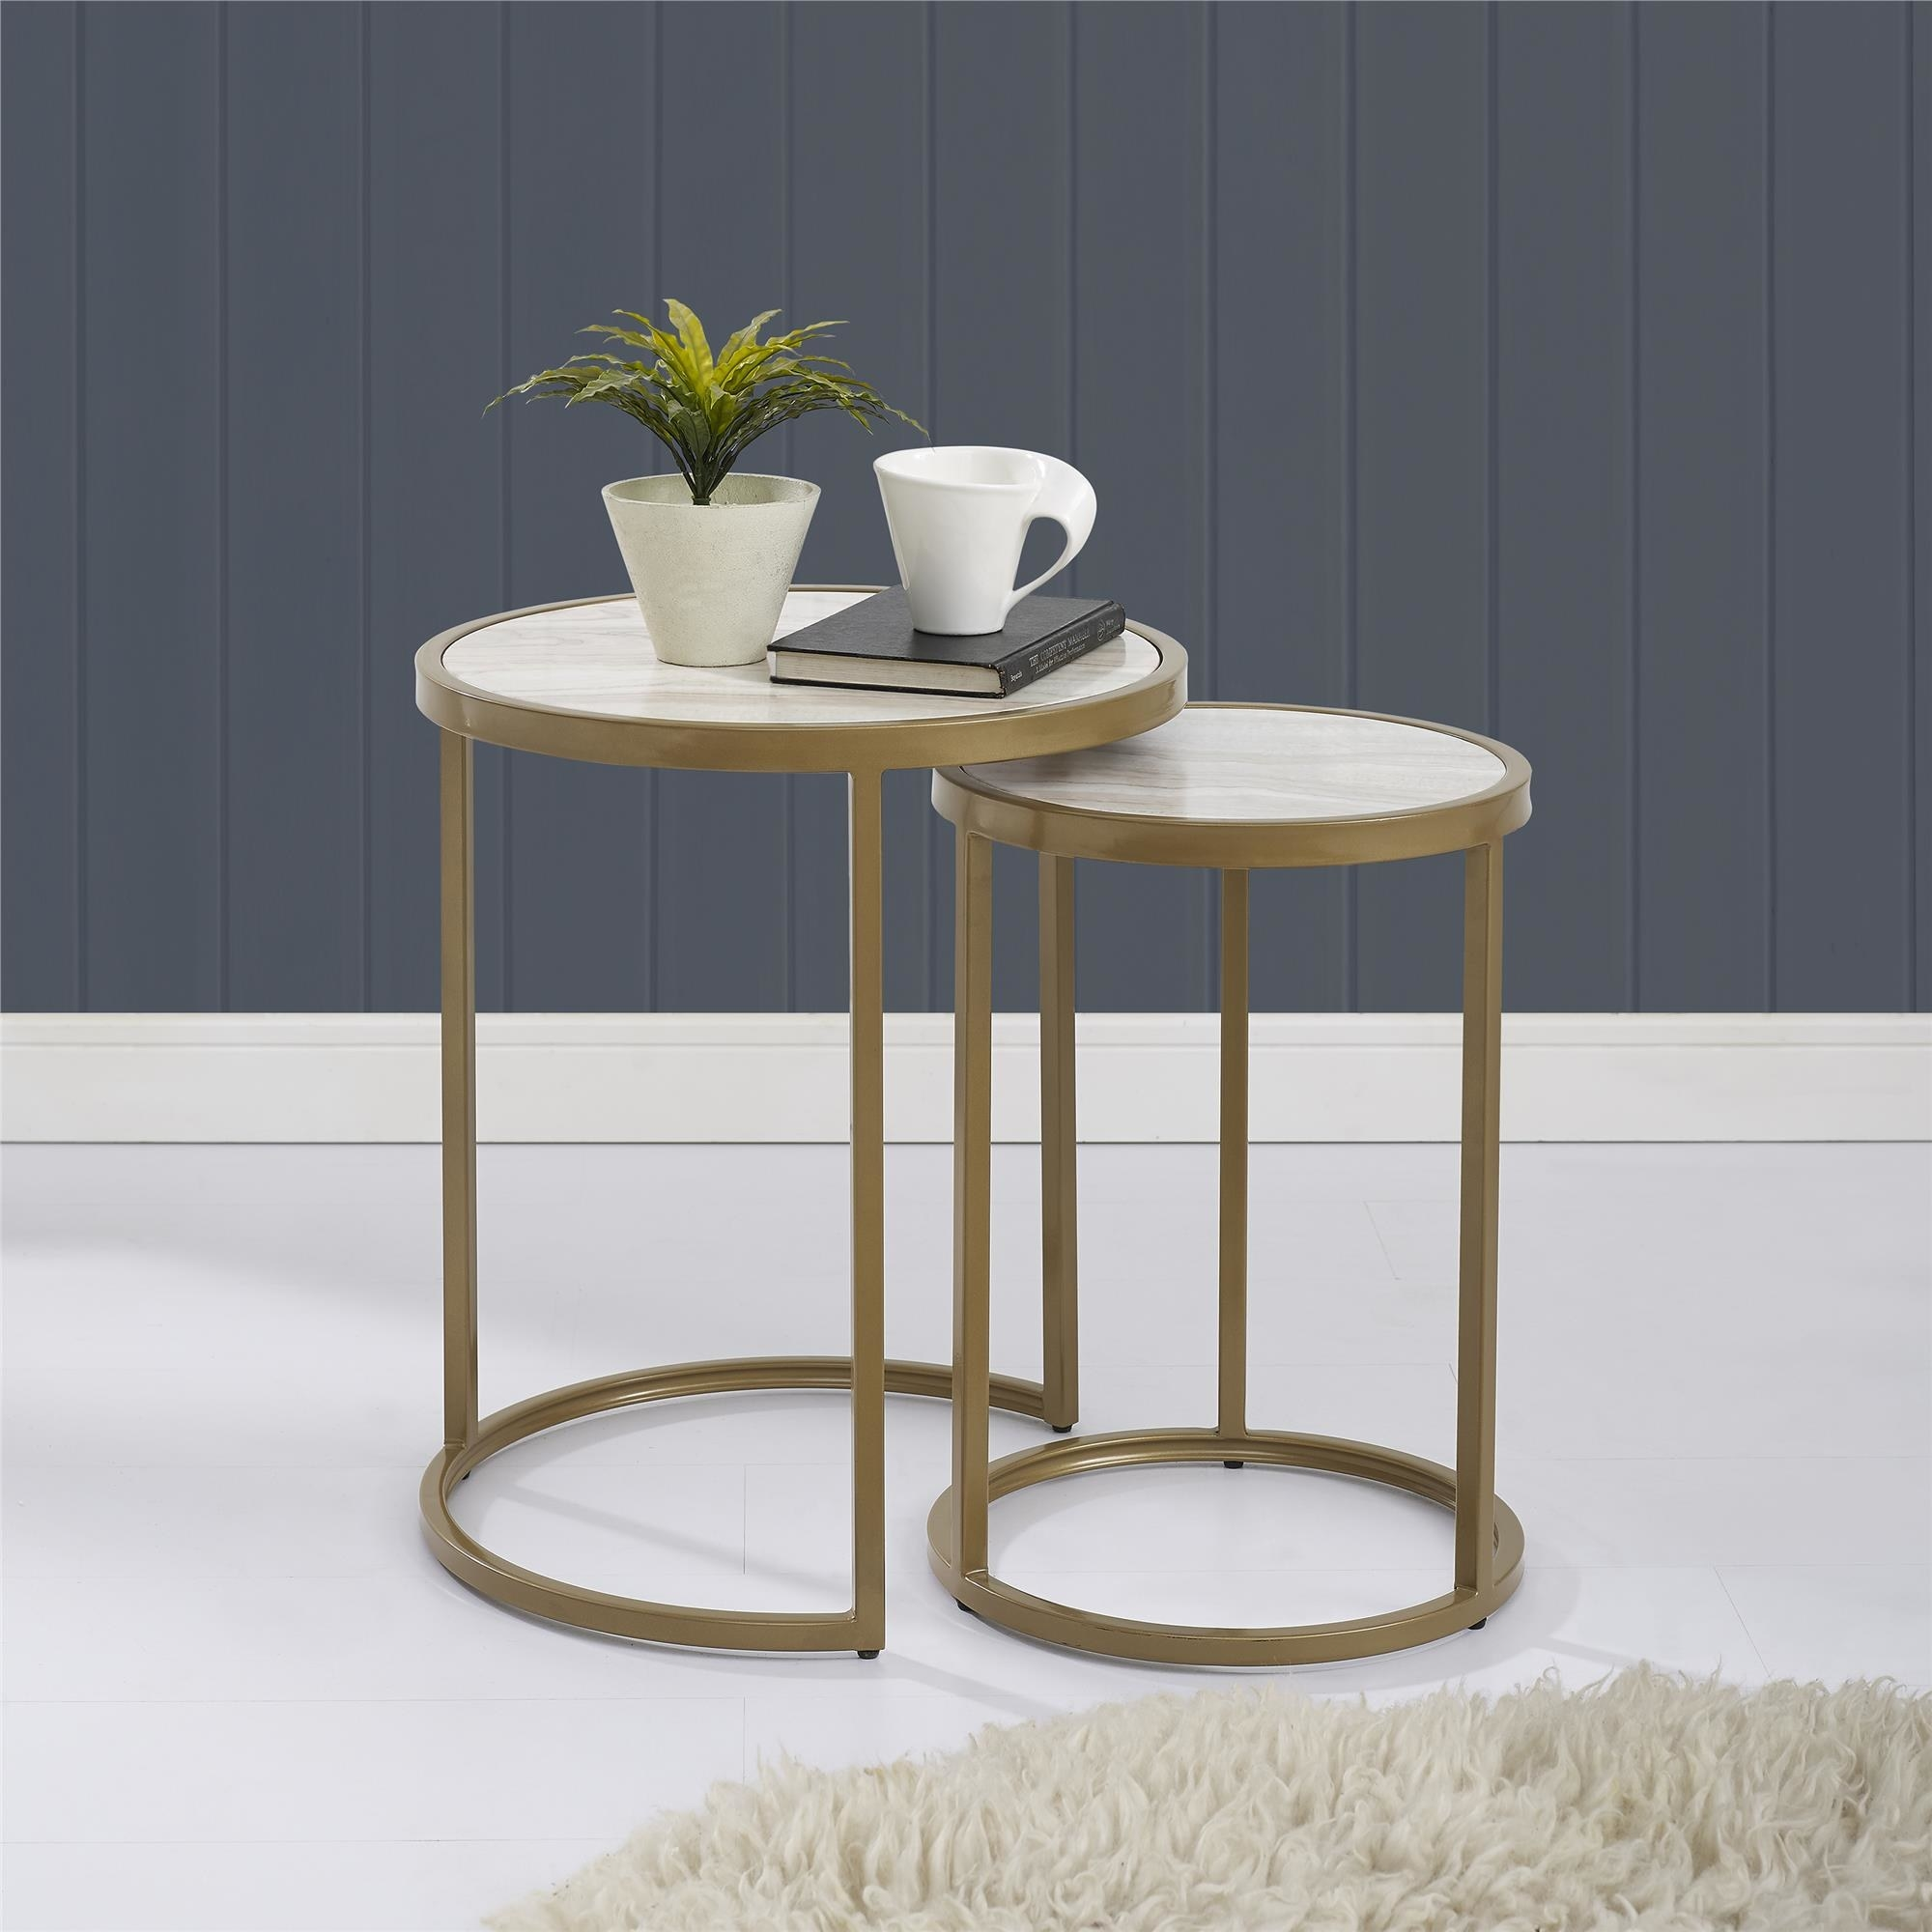 the side table displayed with a book, plant, and cup of coffee on top of it